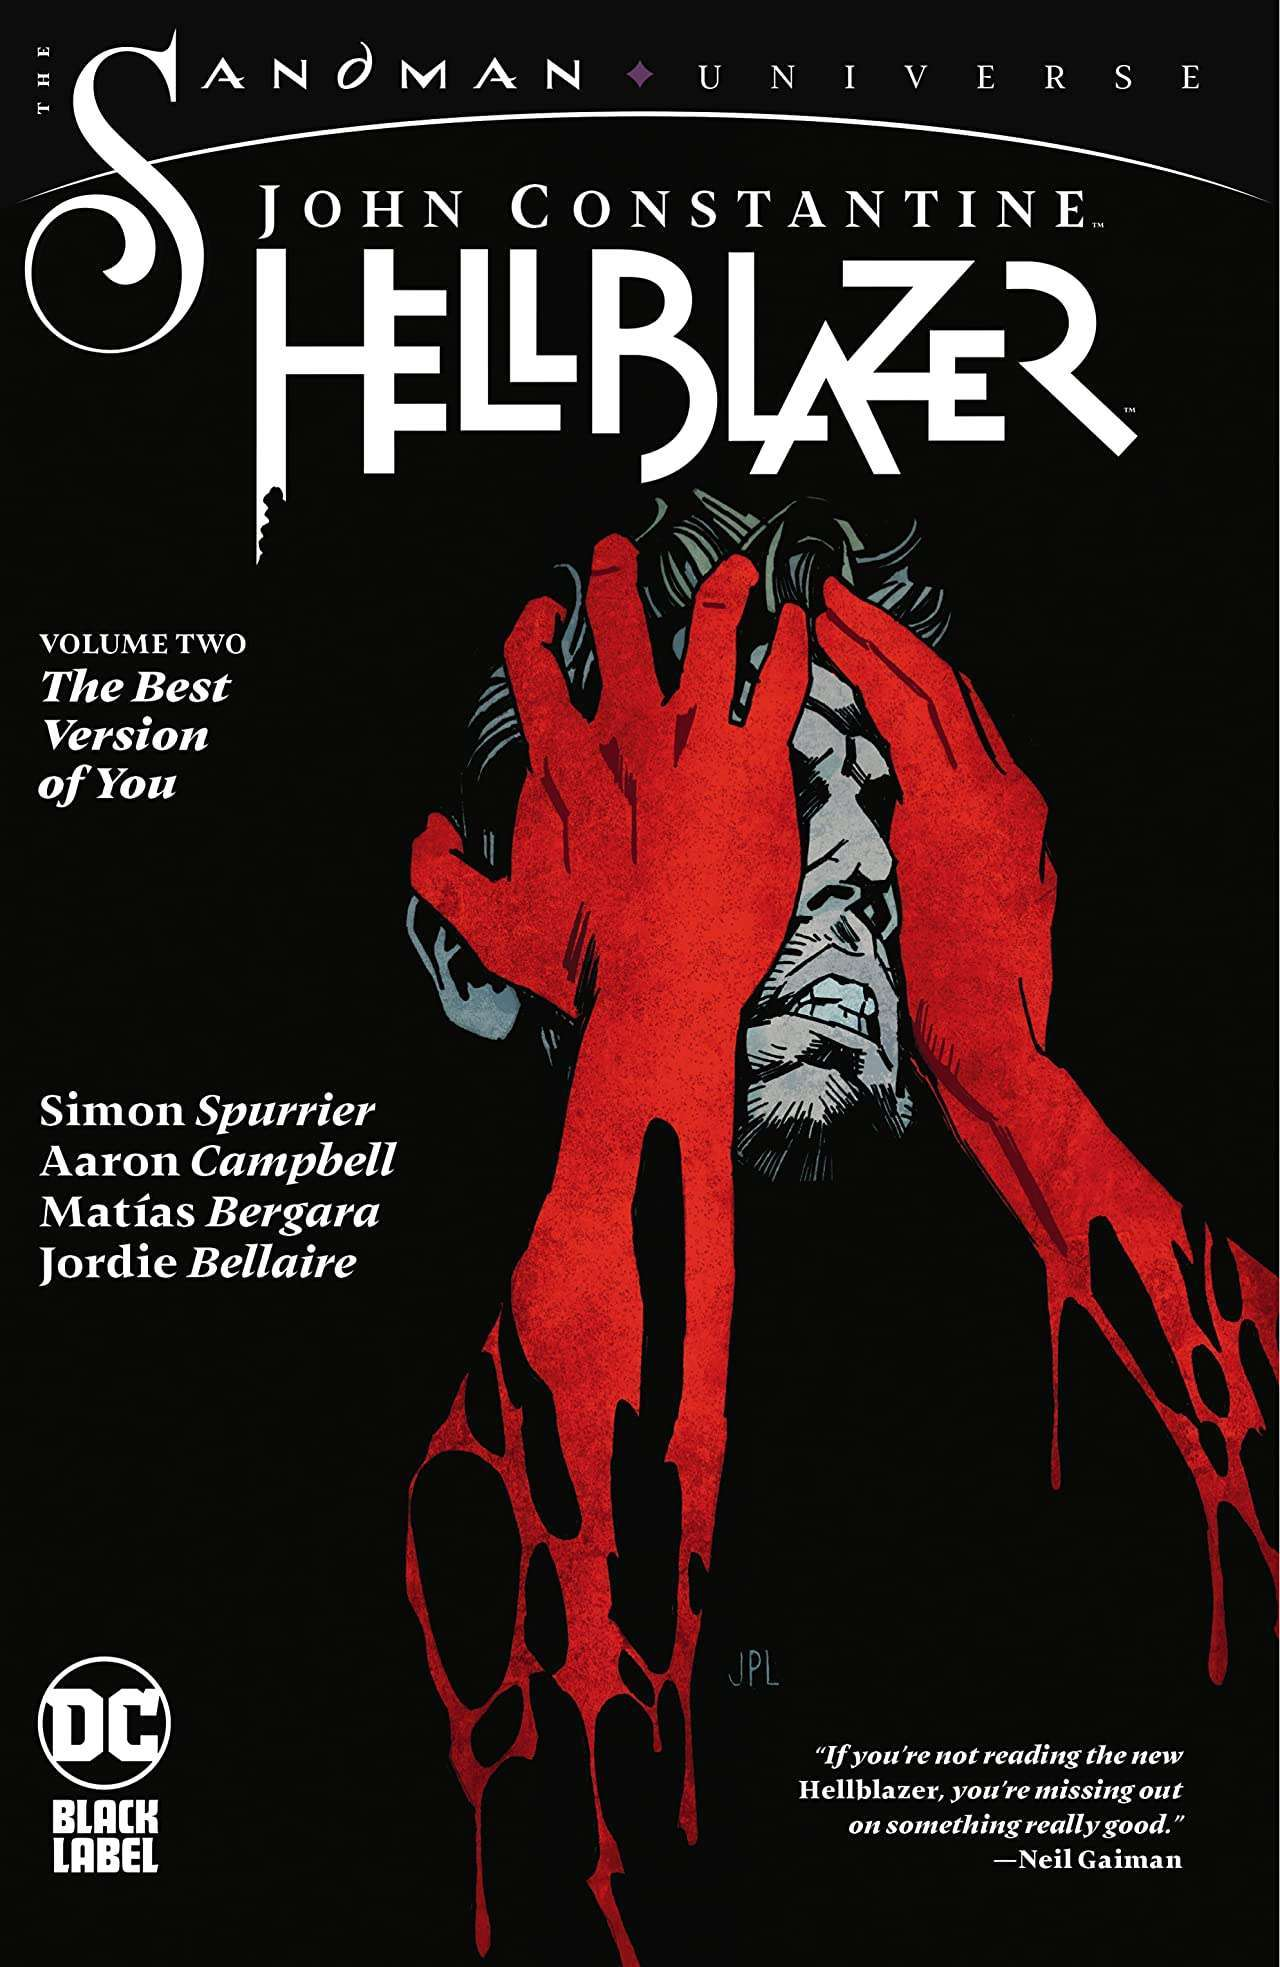 John Constantine Hellblazer Vol 2 The Best Version of You